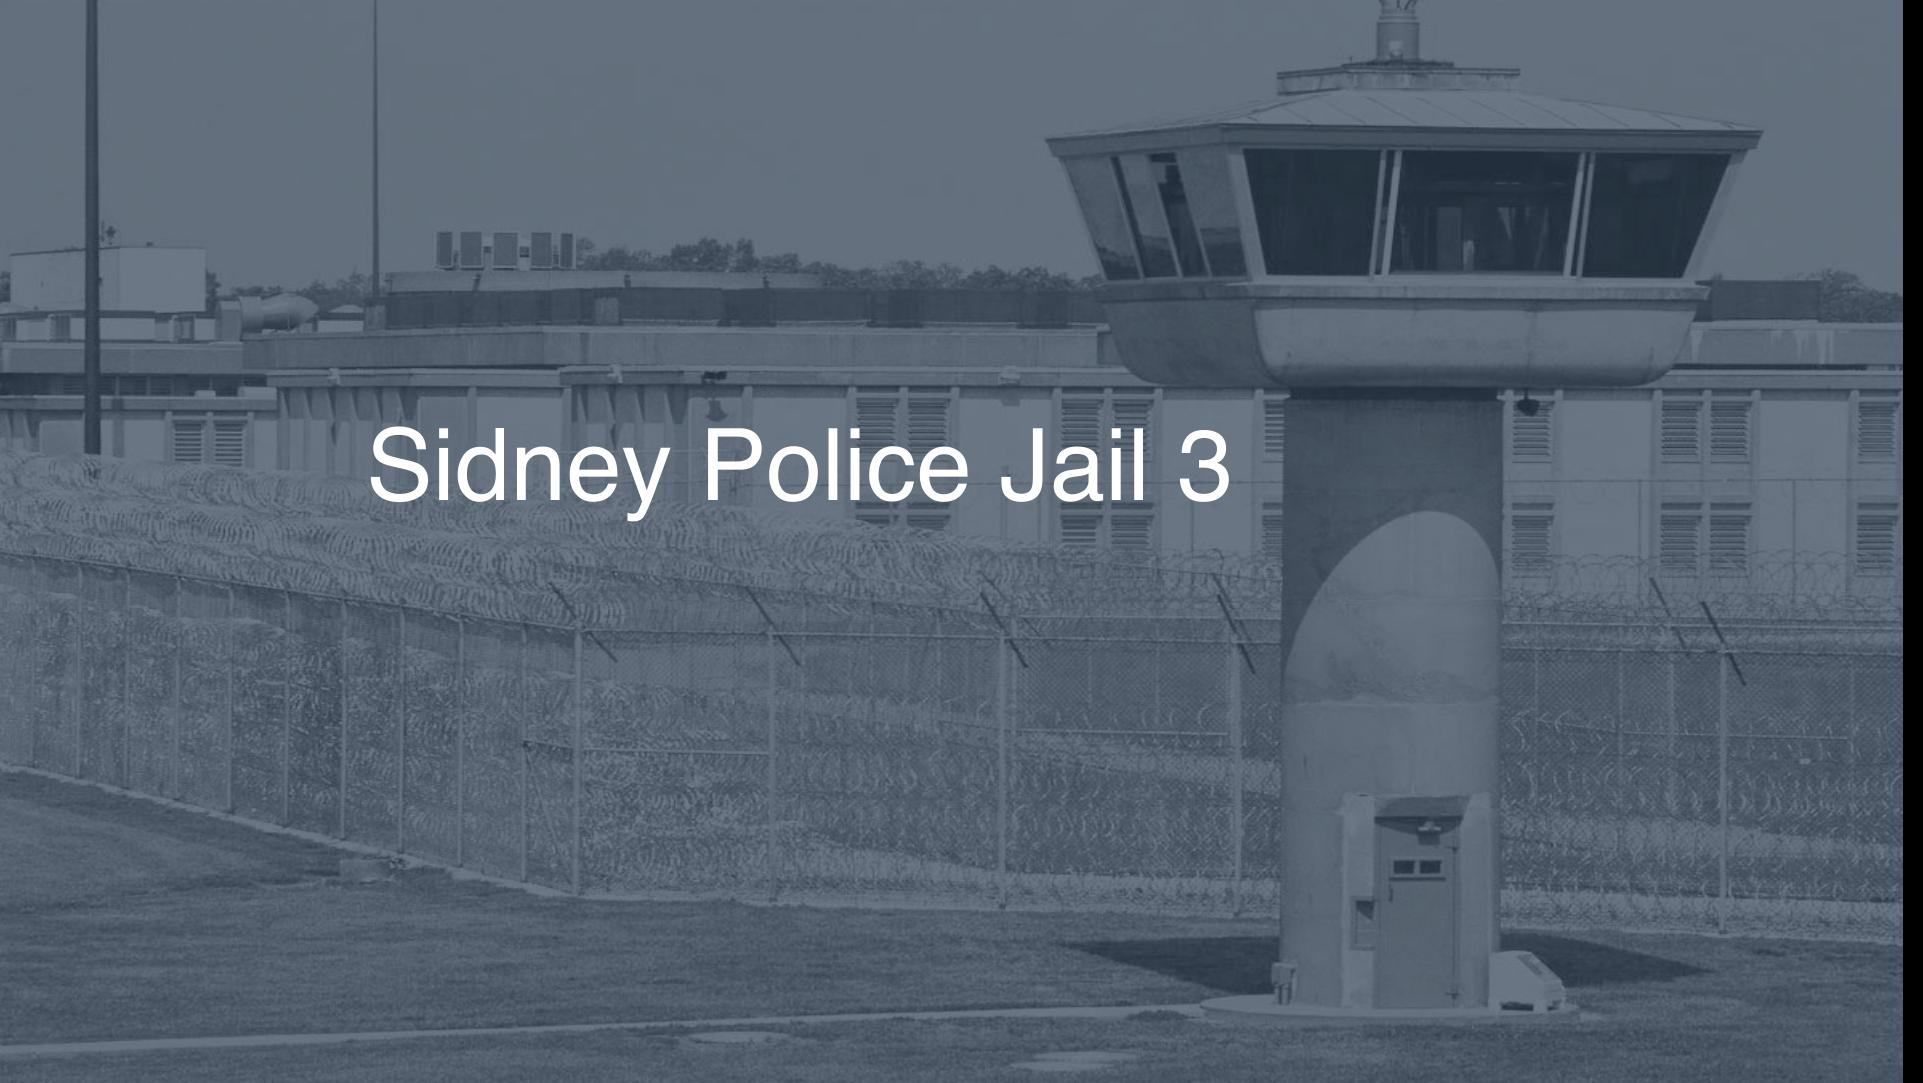 Sidney Police Jail correctional facility picture